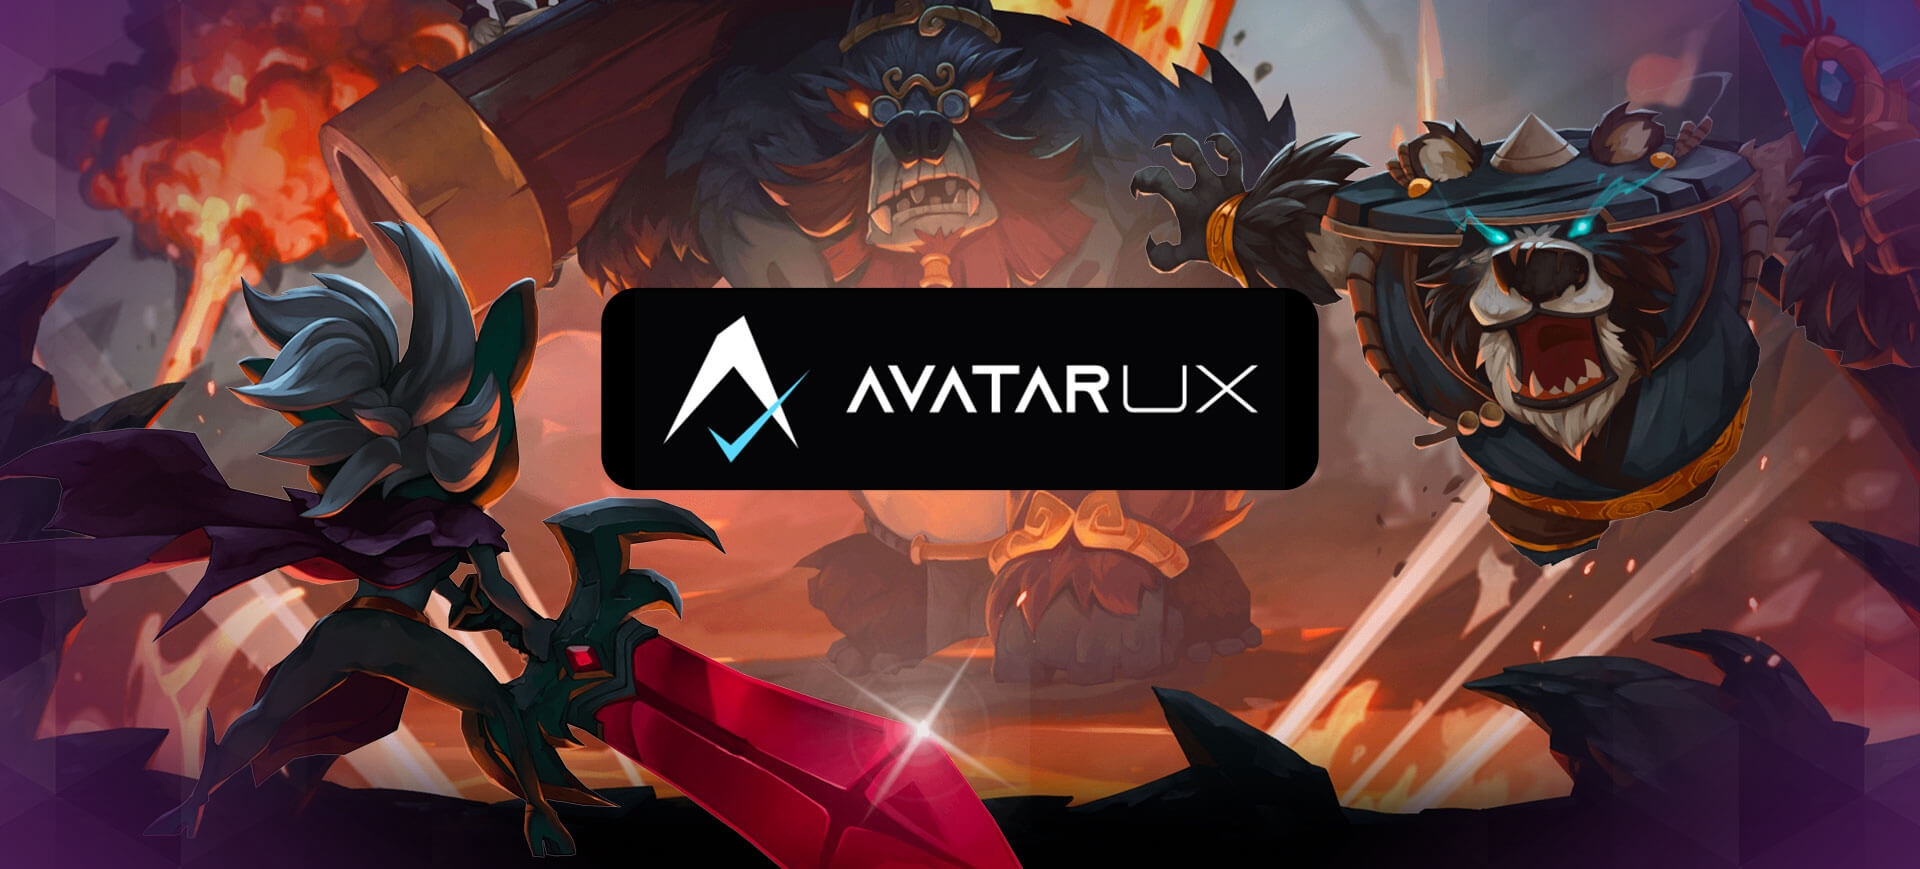 News | Solid Gaming signs new agreement with Avatar UX A Game for Every One | Solid Gaming